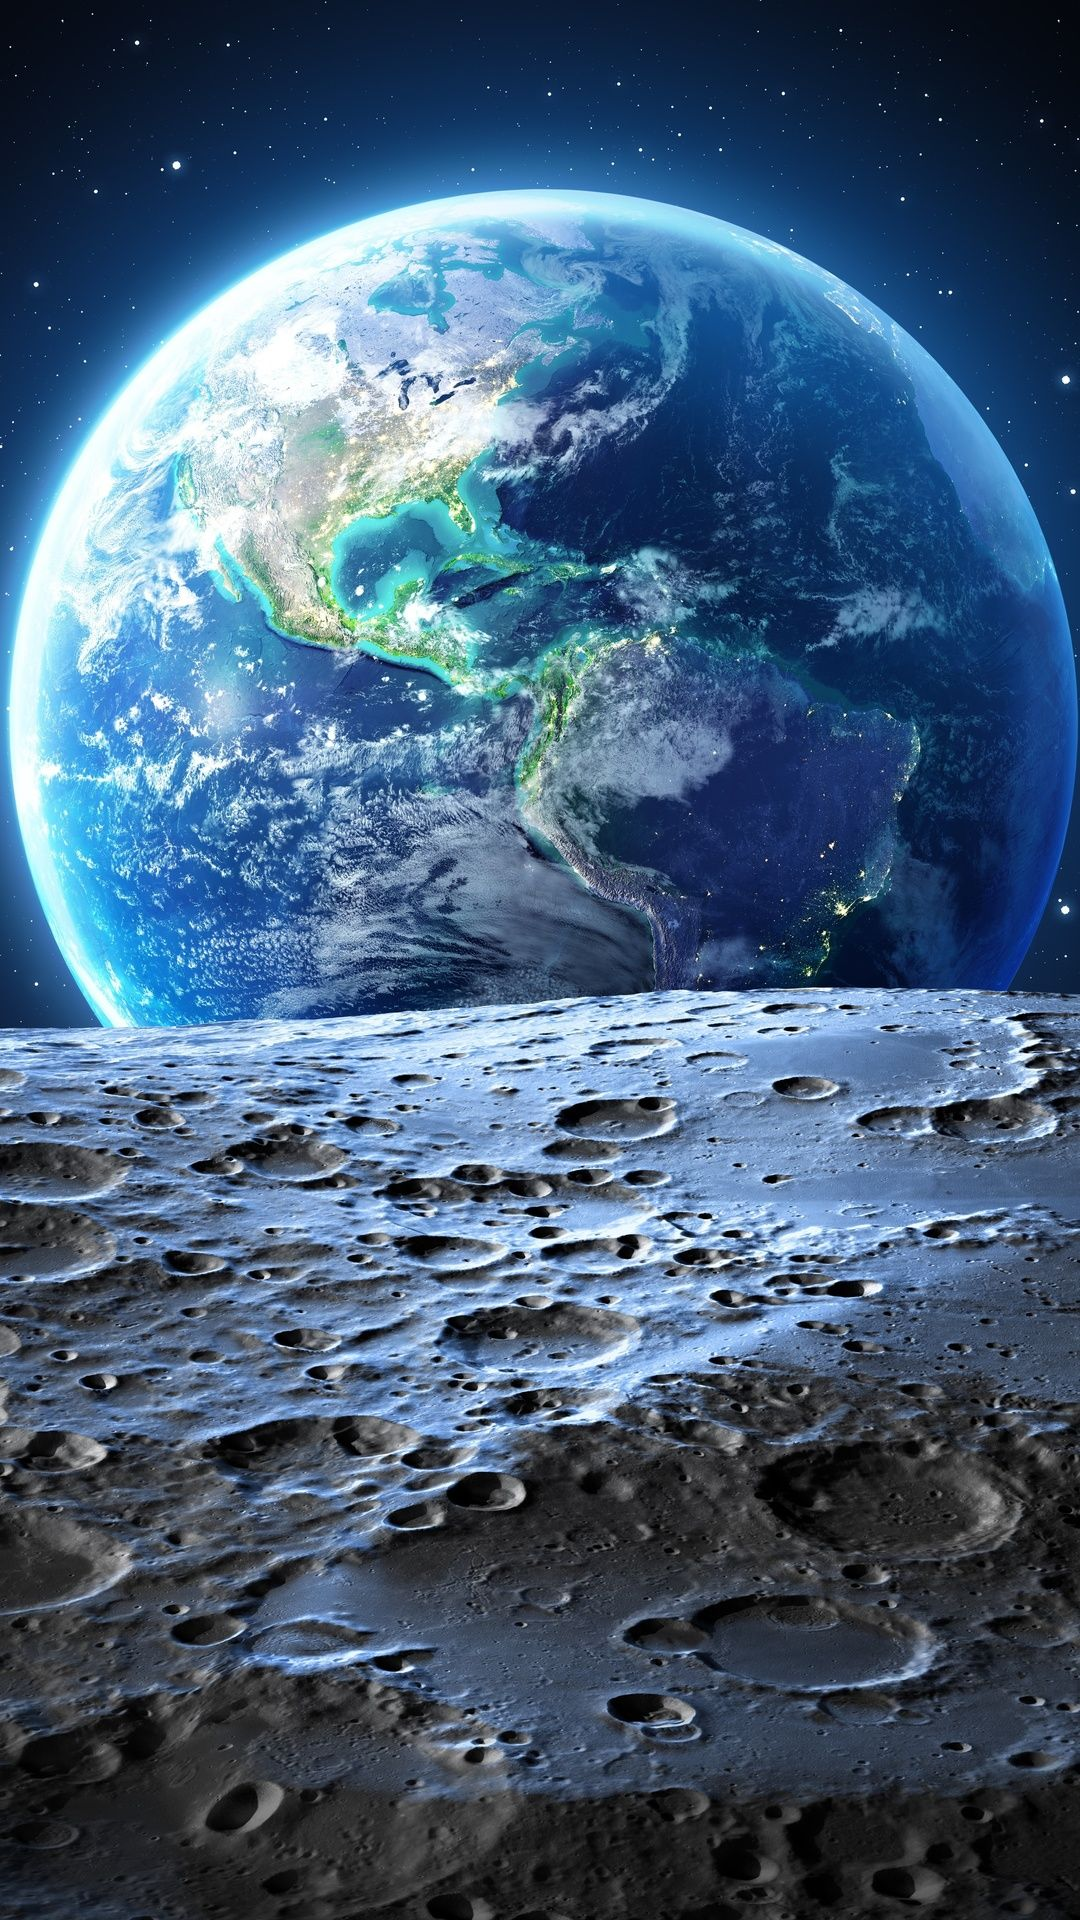 Earth Moon 4k In 1080x1920 Resolution Wallpaper Earth Planets Wallpaper Wallpaper Space